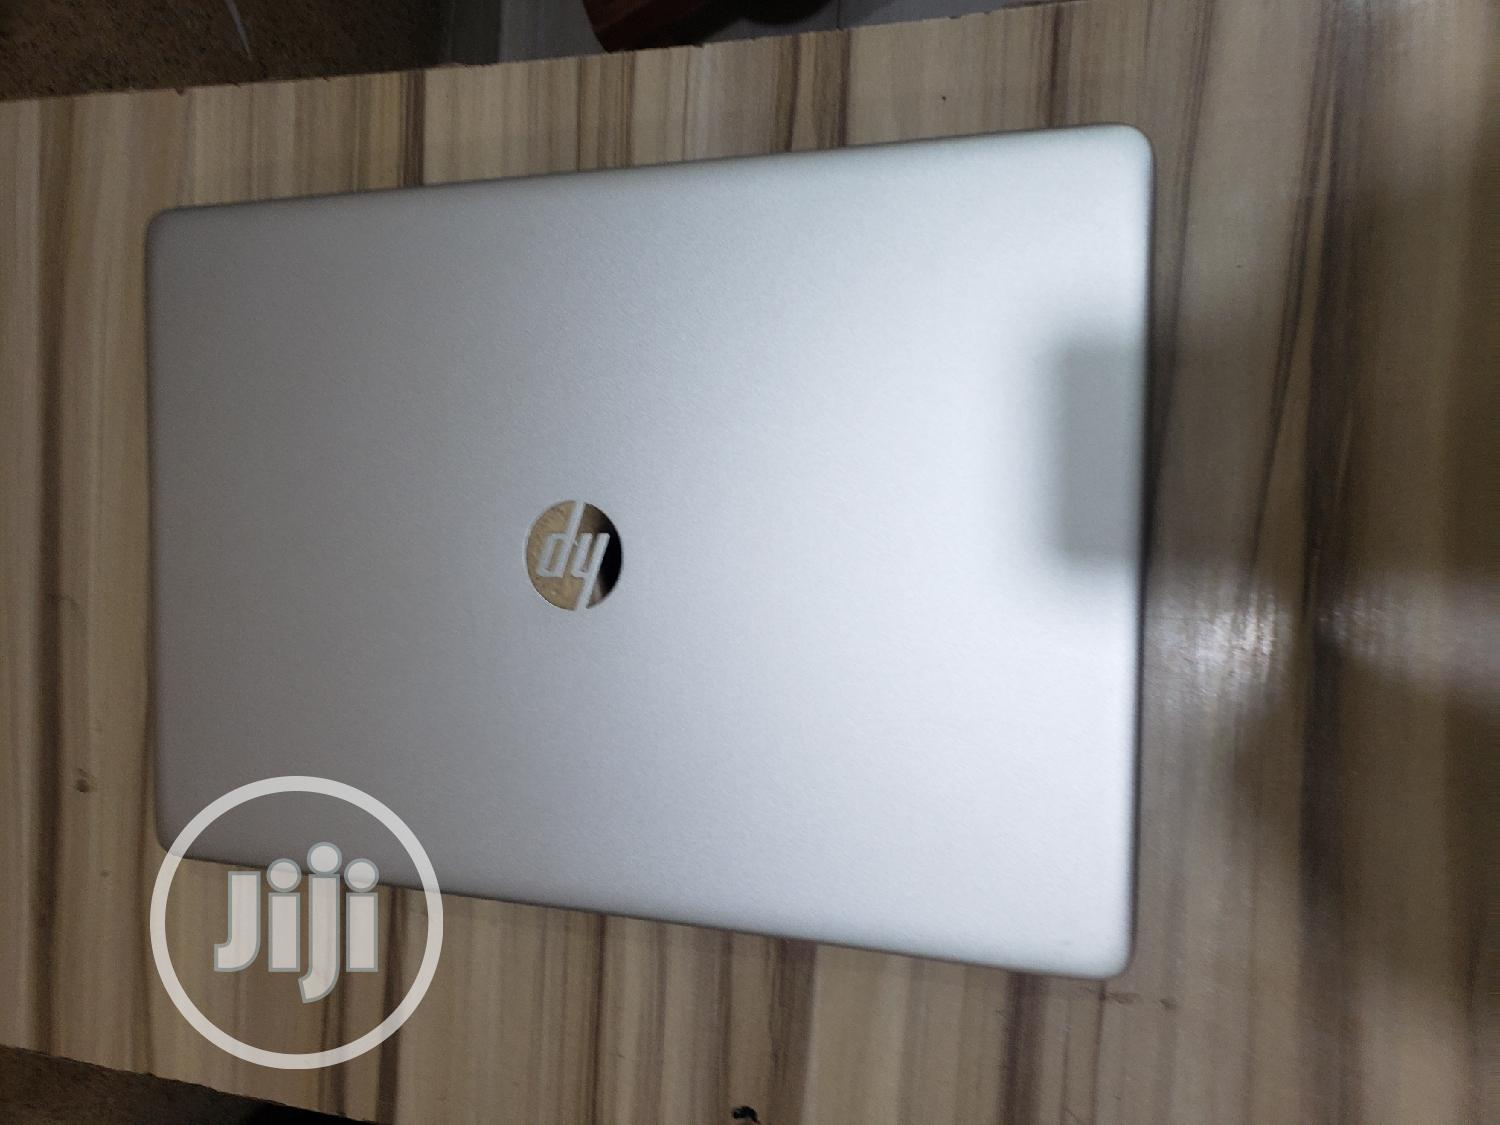 Laptop HP Envy 17 12GB Intel Core i7 SSD 512GB | Laptops & Computers for sale in Wuse 2, Abuja (FCT) State, Nigeria